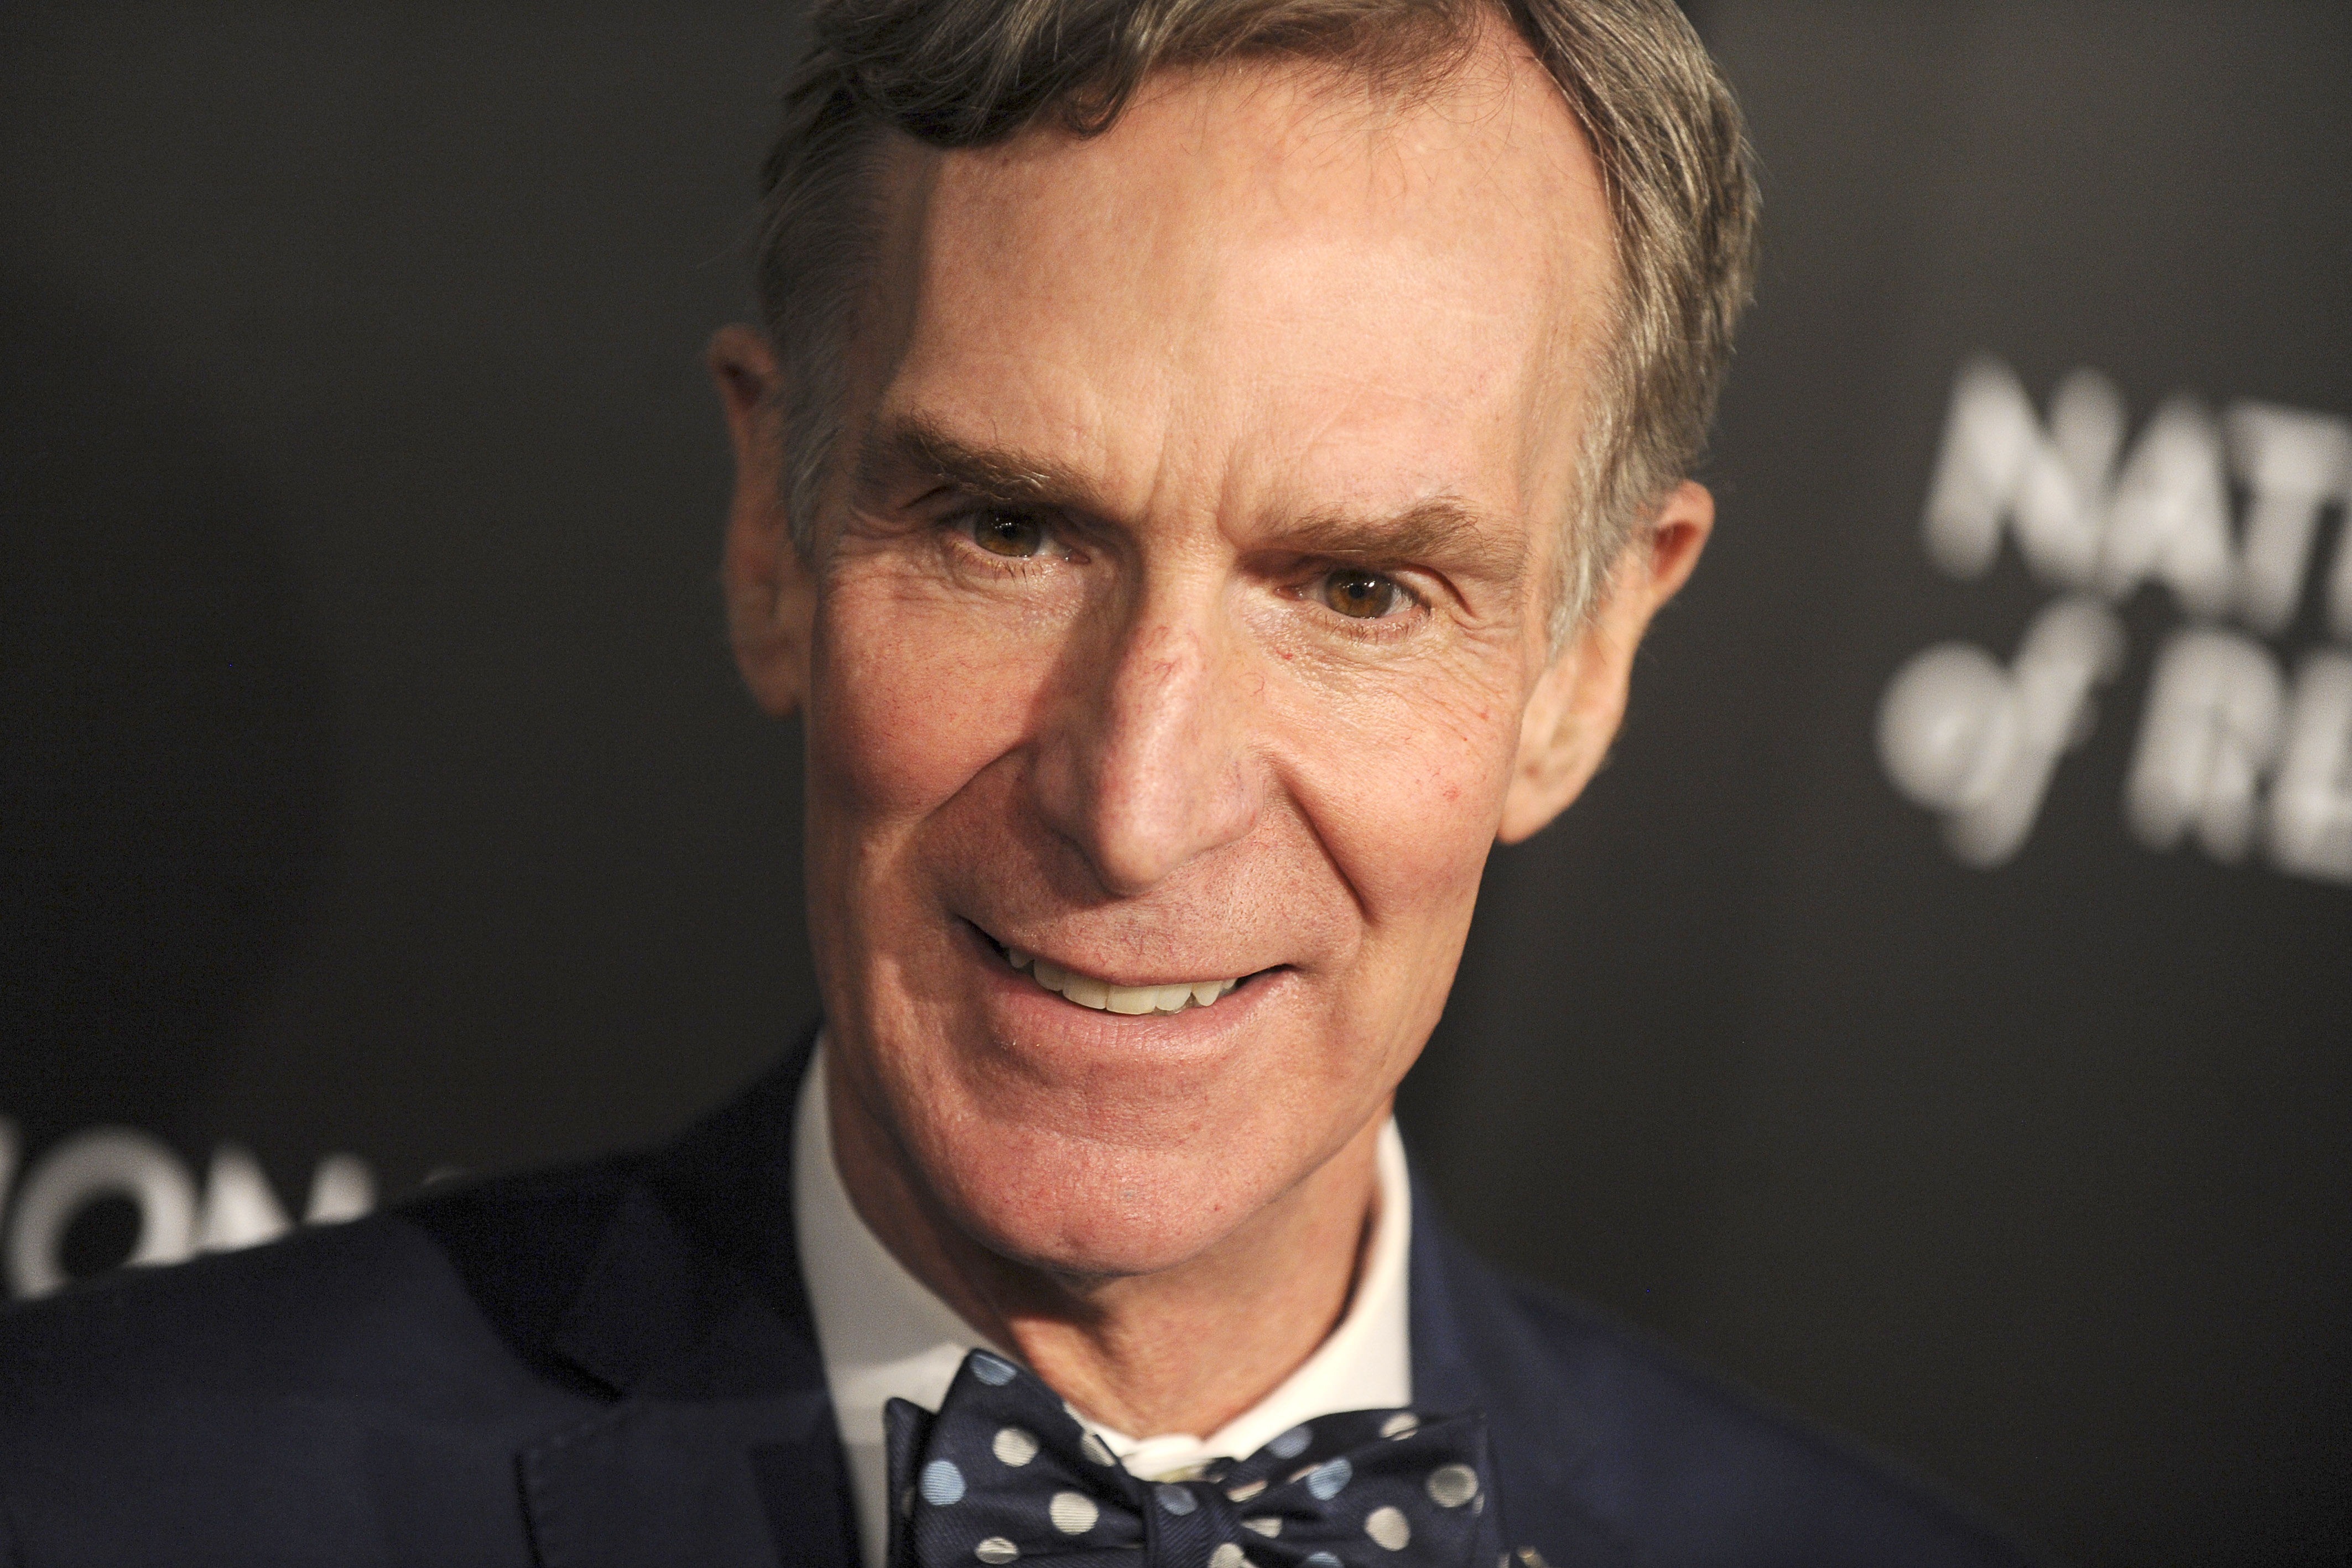 Bill Nye attends 2015 National Board of Review Gala at Cipriani 42nd Street on Jan. 5, 2016 in New York City.